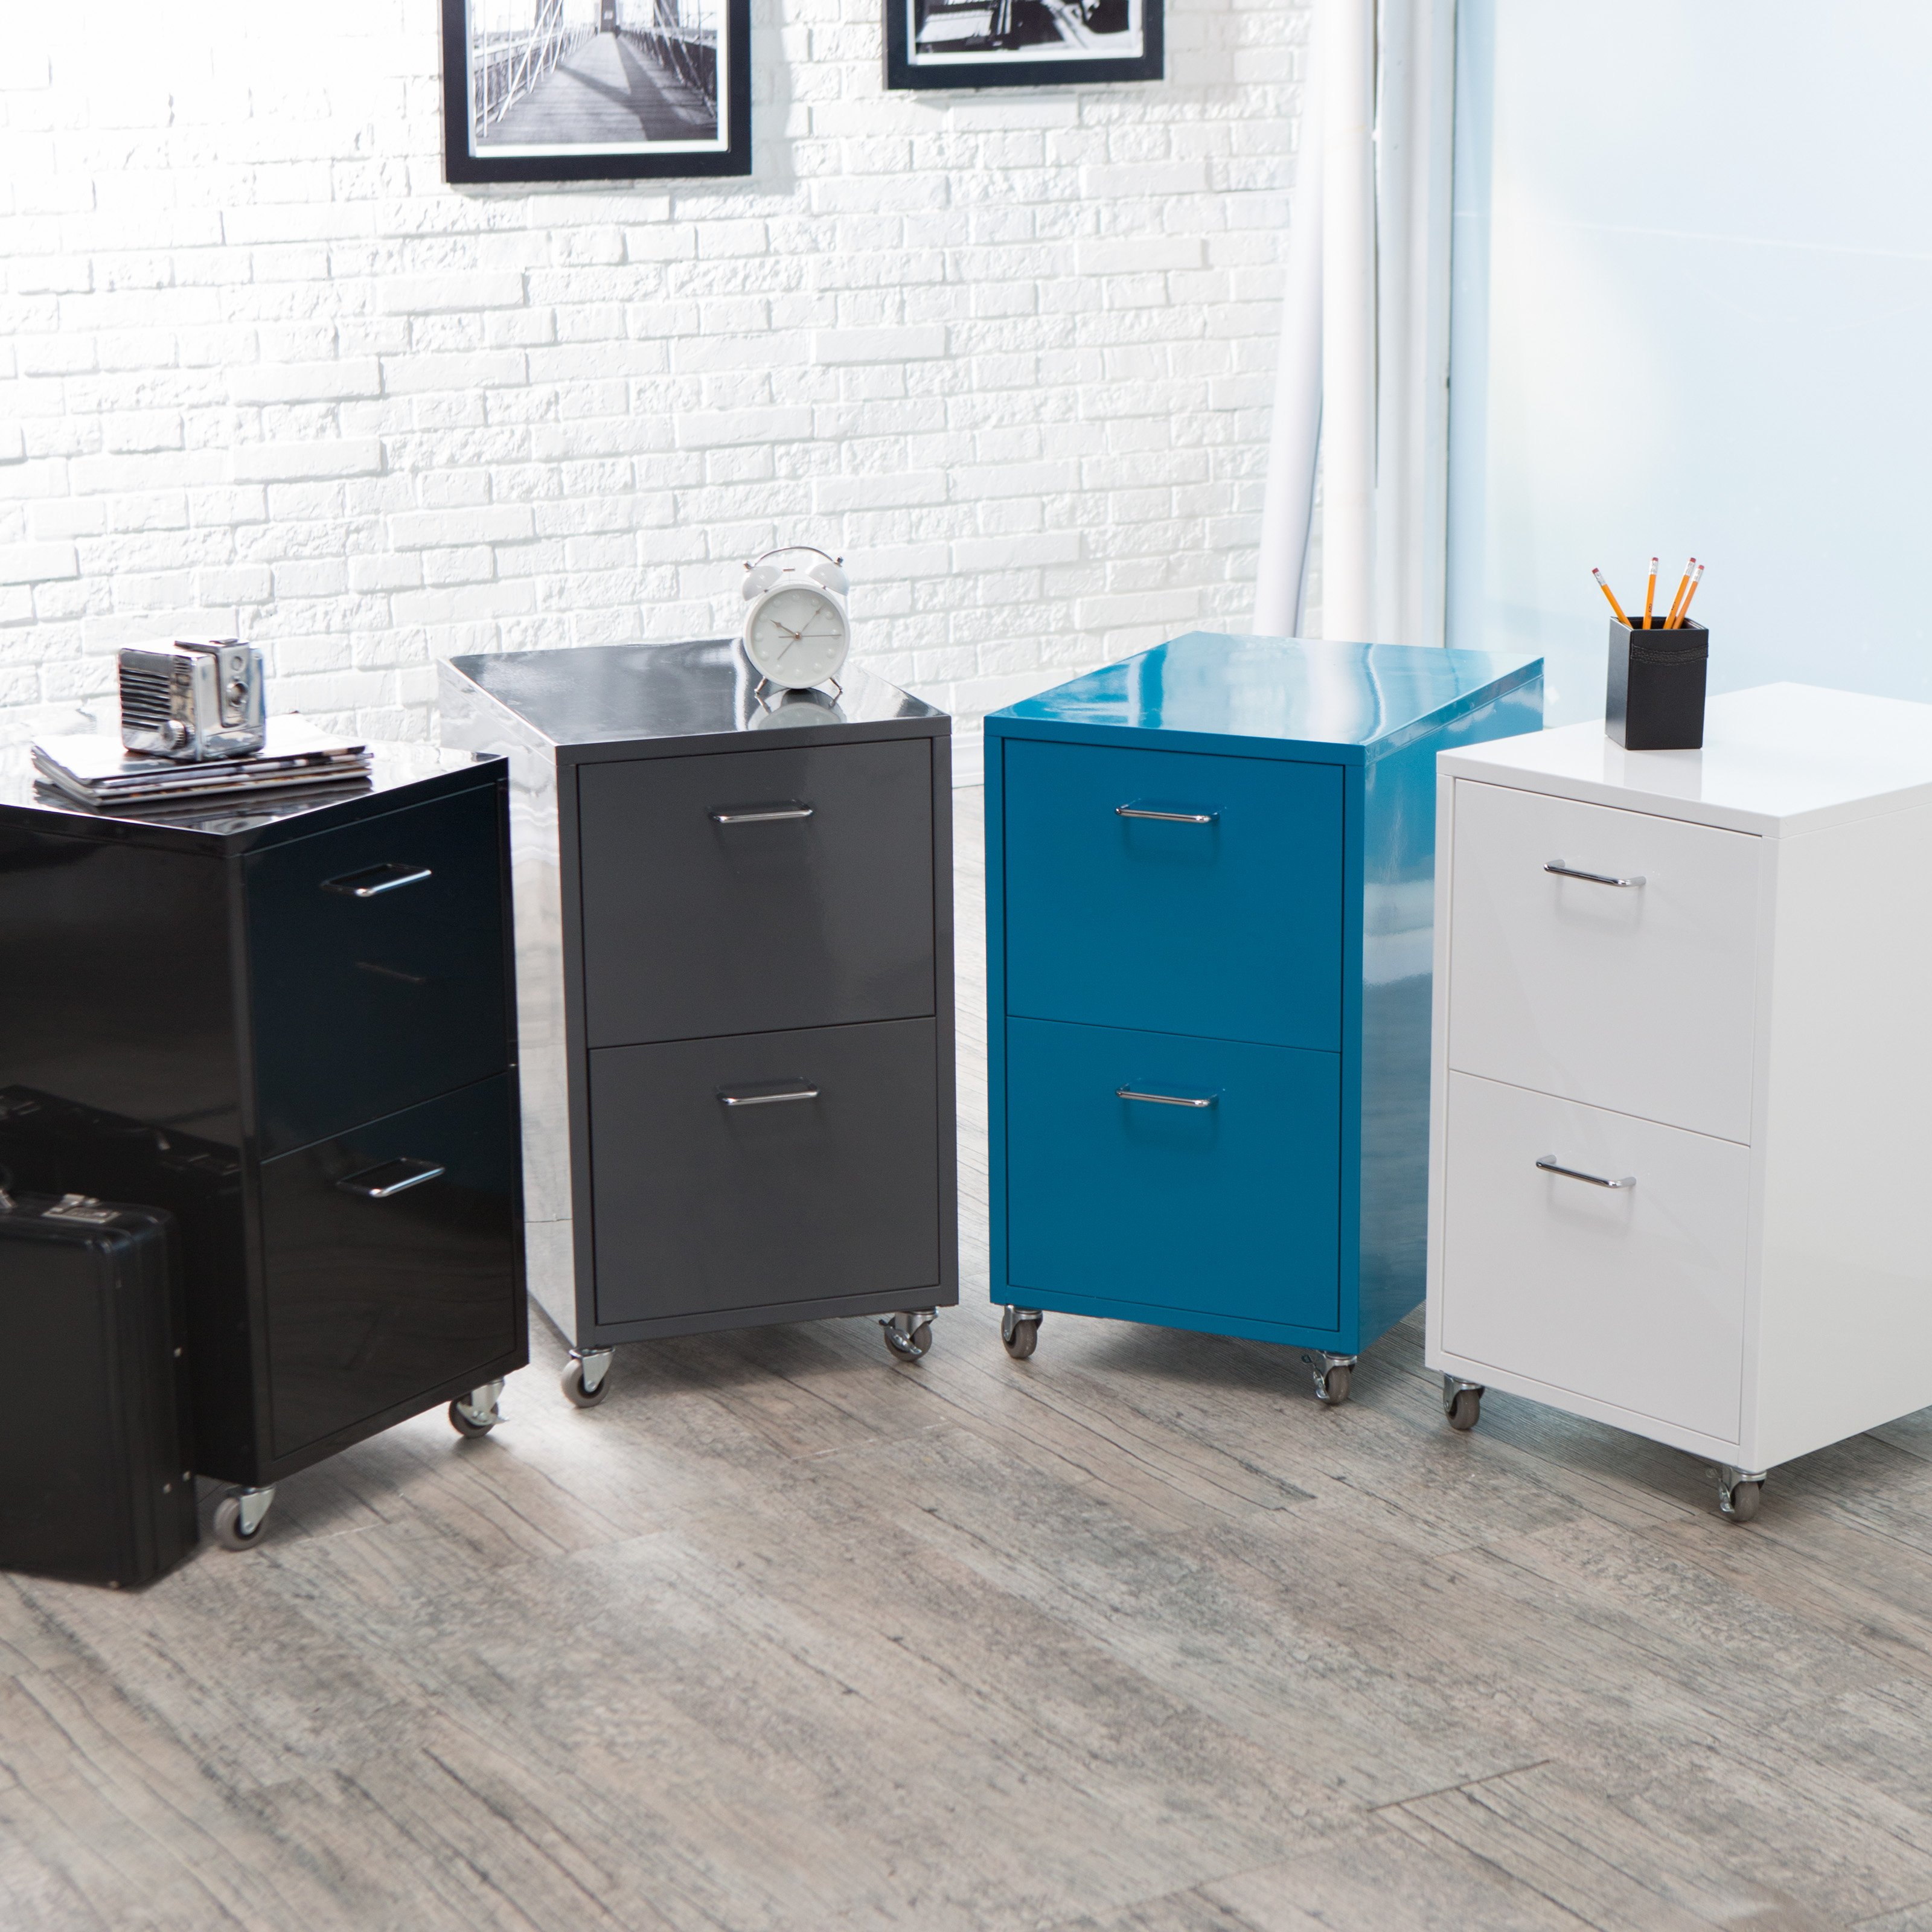 Natural Colors Stylish Filing Cabinets With Casters White Bricks Wall Gray Wooden Floor Simple Small